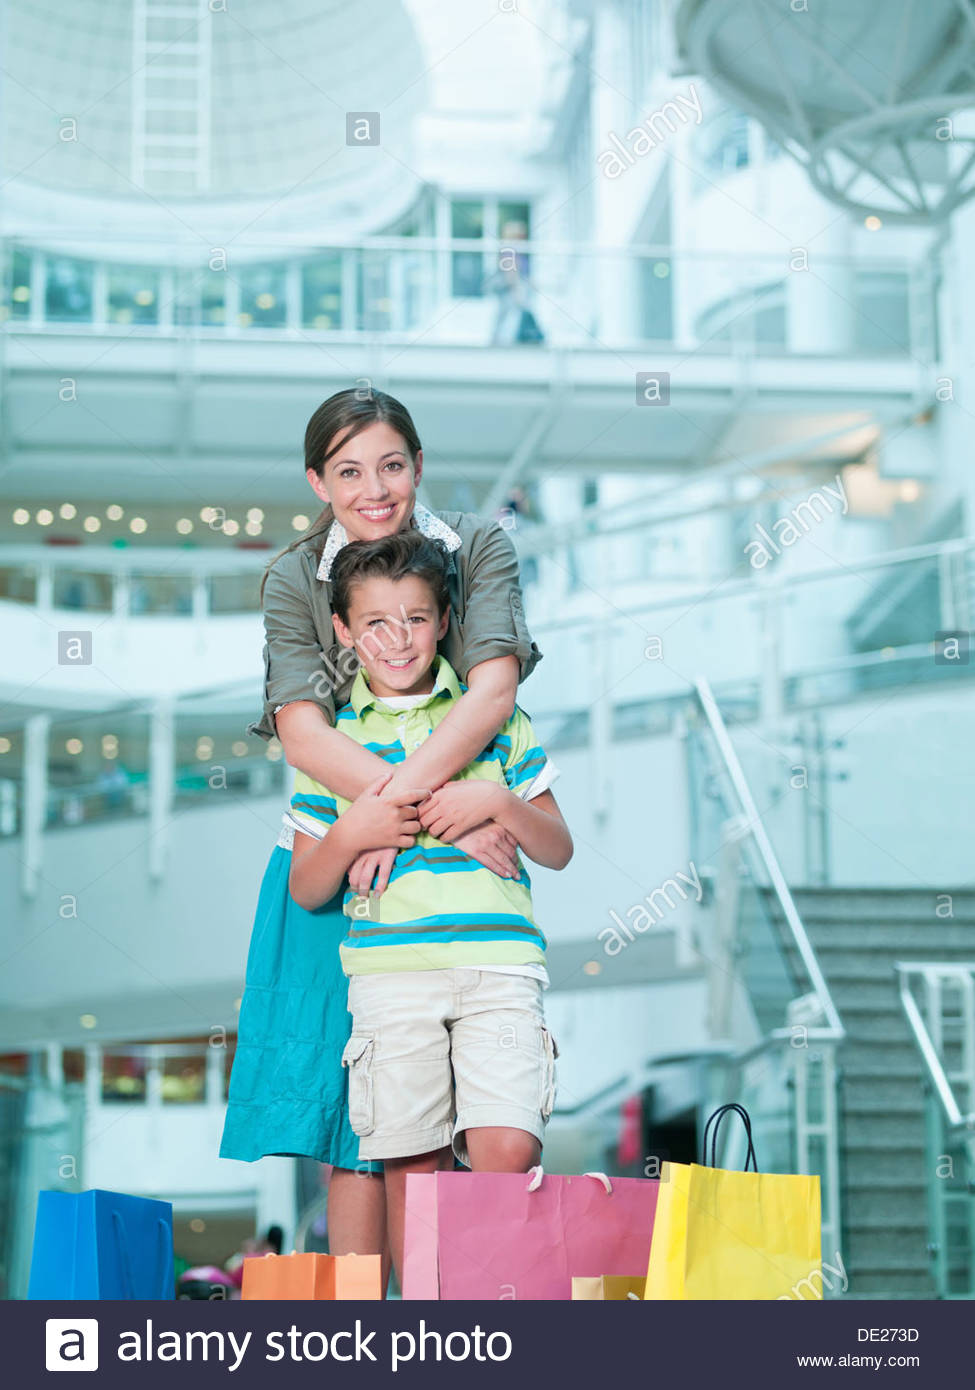 Mother hugging son in shopping mall - Stock Image